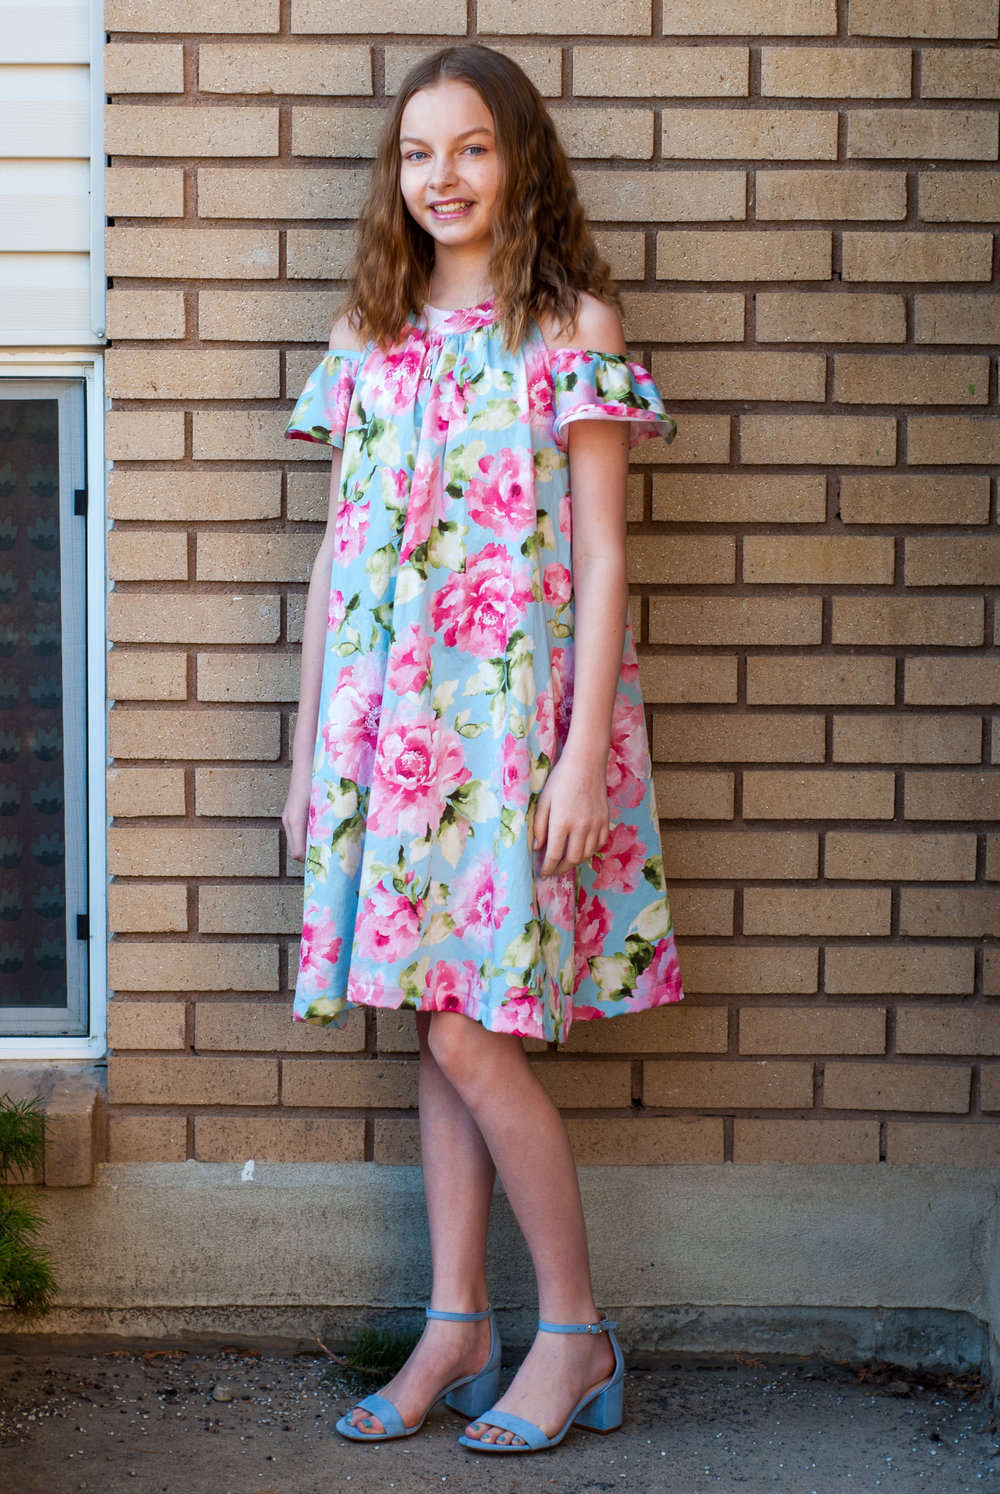 Natalie made her Easter Dress this year! We used New Look pattern #D0917